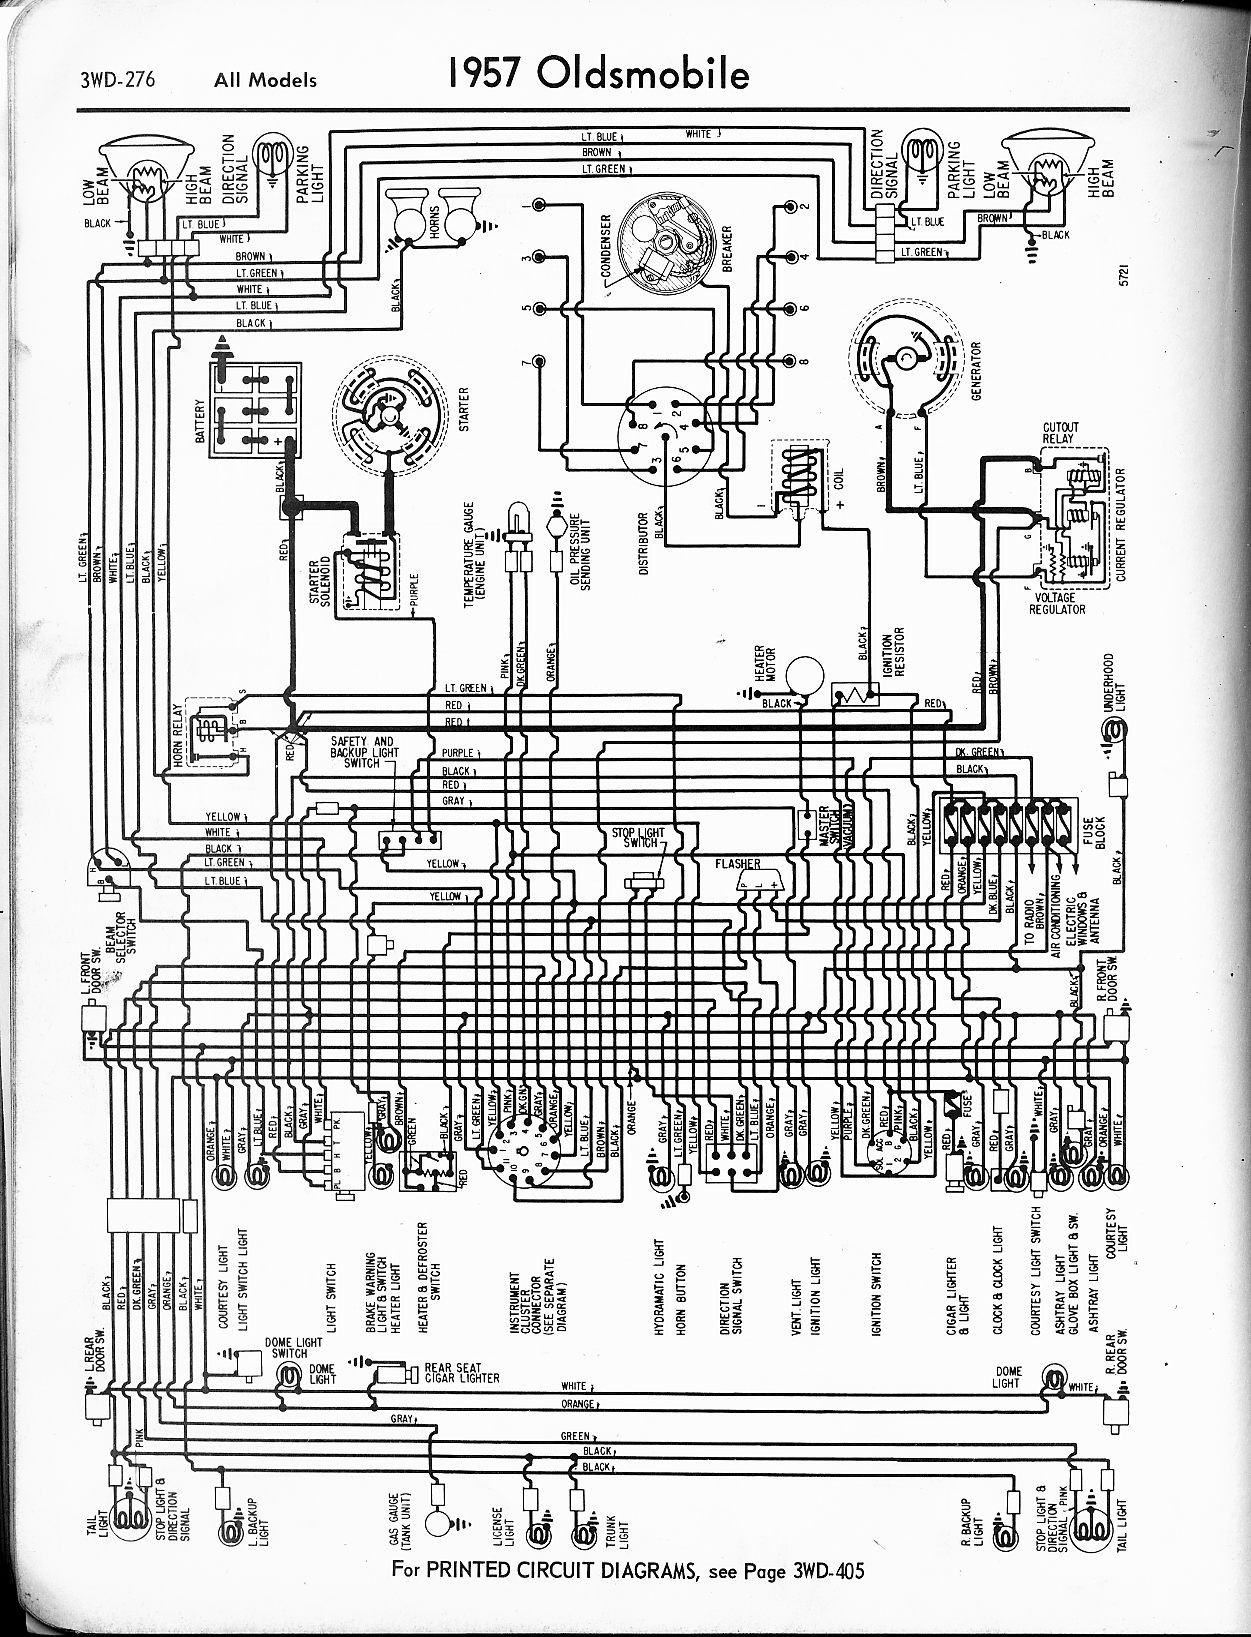 2004 Kia Amanti Engine Diagram Wiring Diagram Besides 1996 Oldsmobile Cutlass Engine Wiring Diagram Of 2004 Kia Amanti Engine Diagram